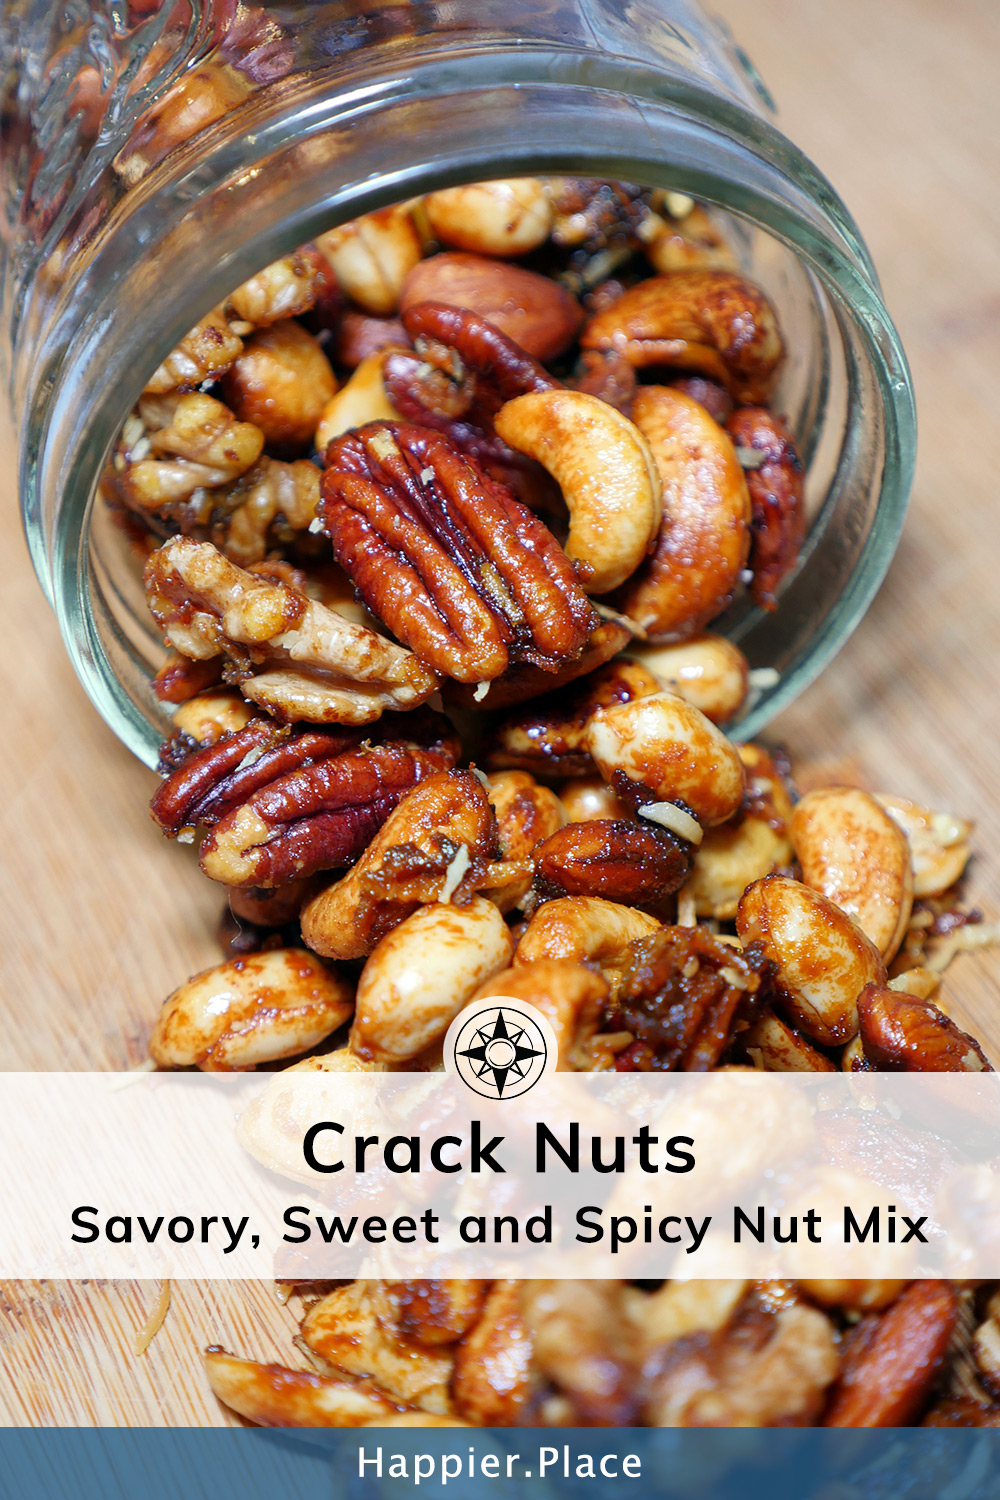 Elevate your next party or outdoor adventure with this irresistible savory, sweet and spicy nut mix. The well-balanced mixed nuts, with just a hint of curry and coconut, are ideal as fancy cocktail nuts or an exotic trail mix.